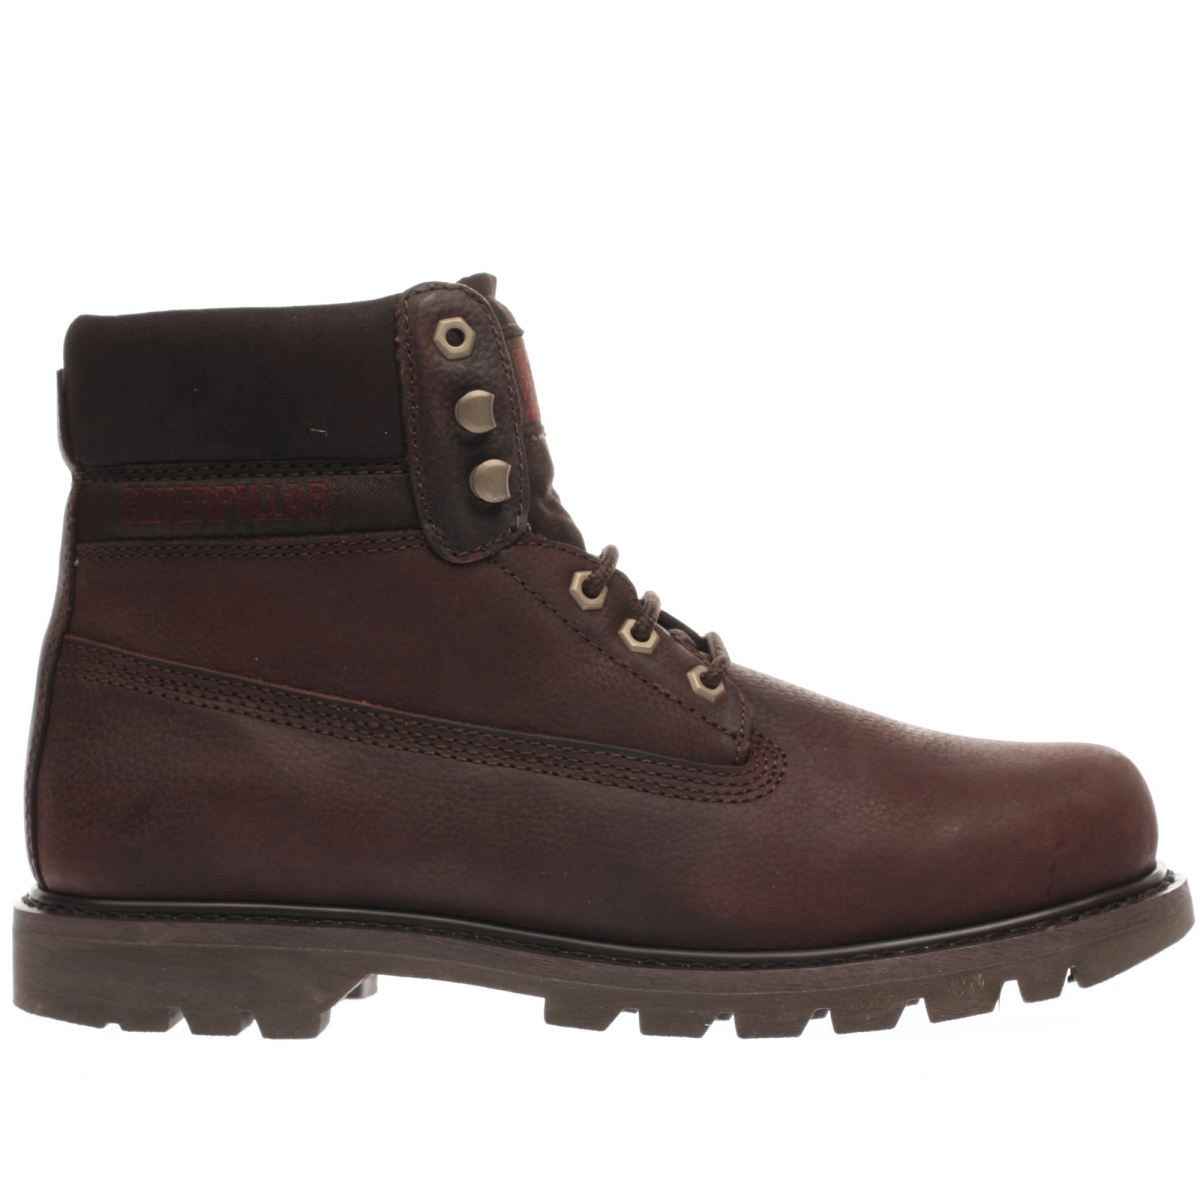 cat-footwear burgundy colorado boots